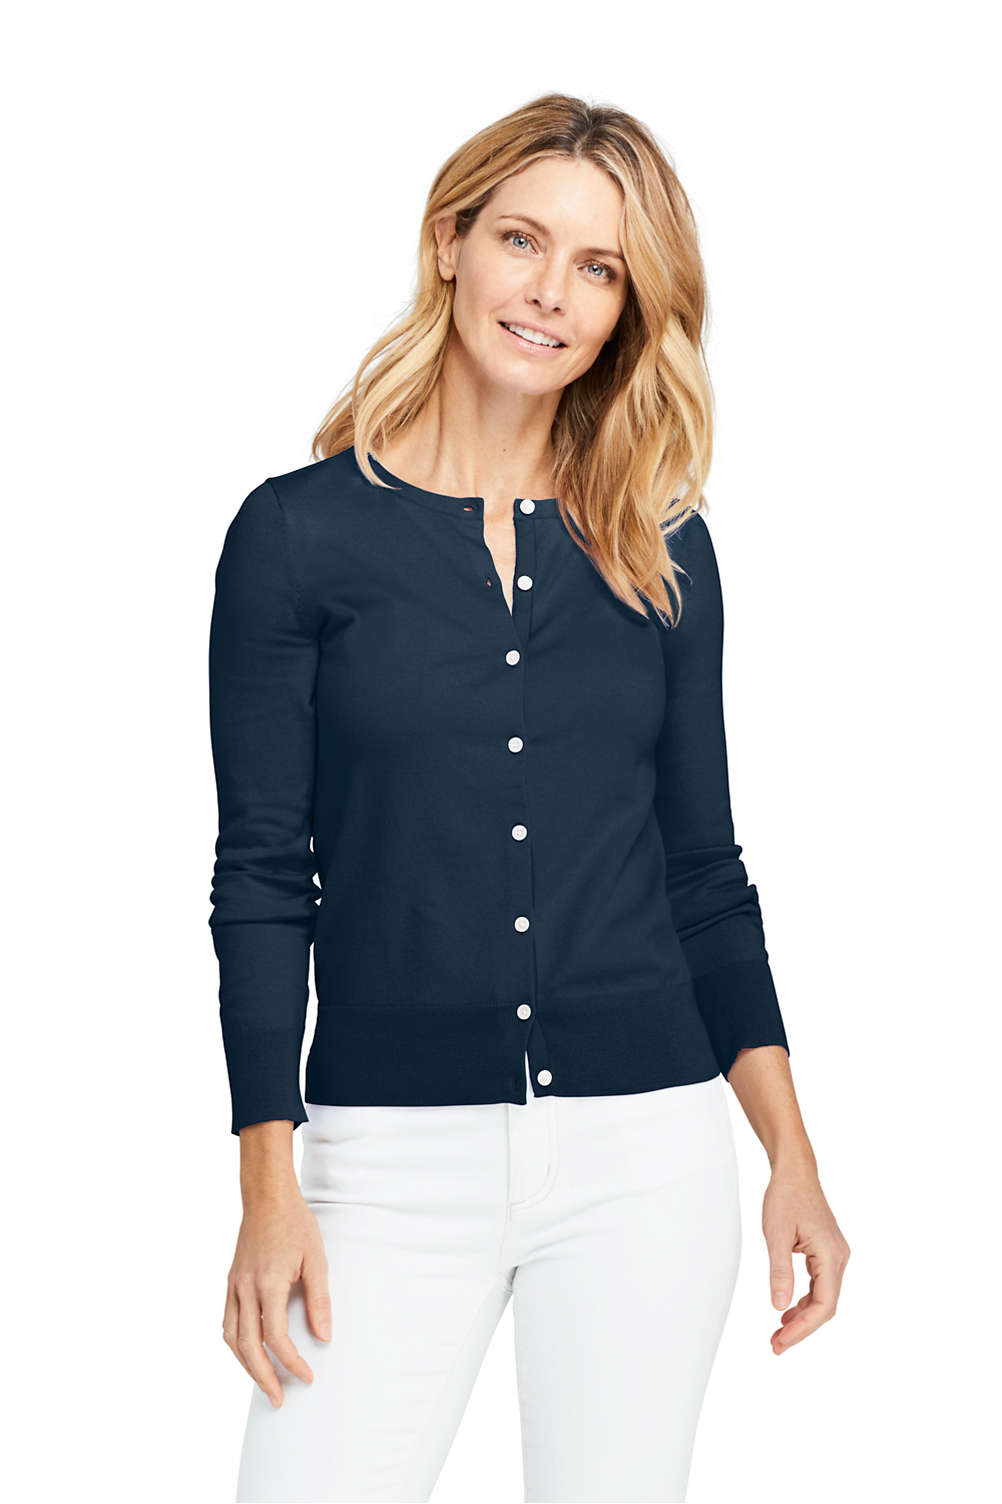 c7a637459afe Women's Supima Cotton Long Sleeve Cardigan Sweater from Lands' End